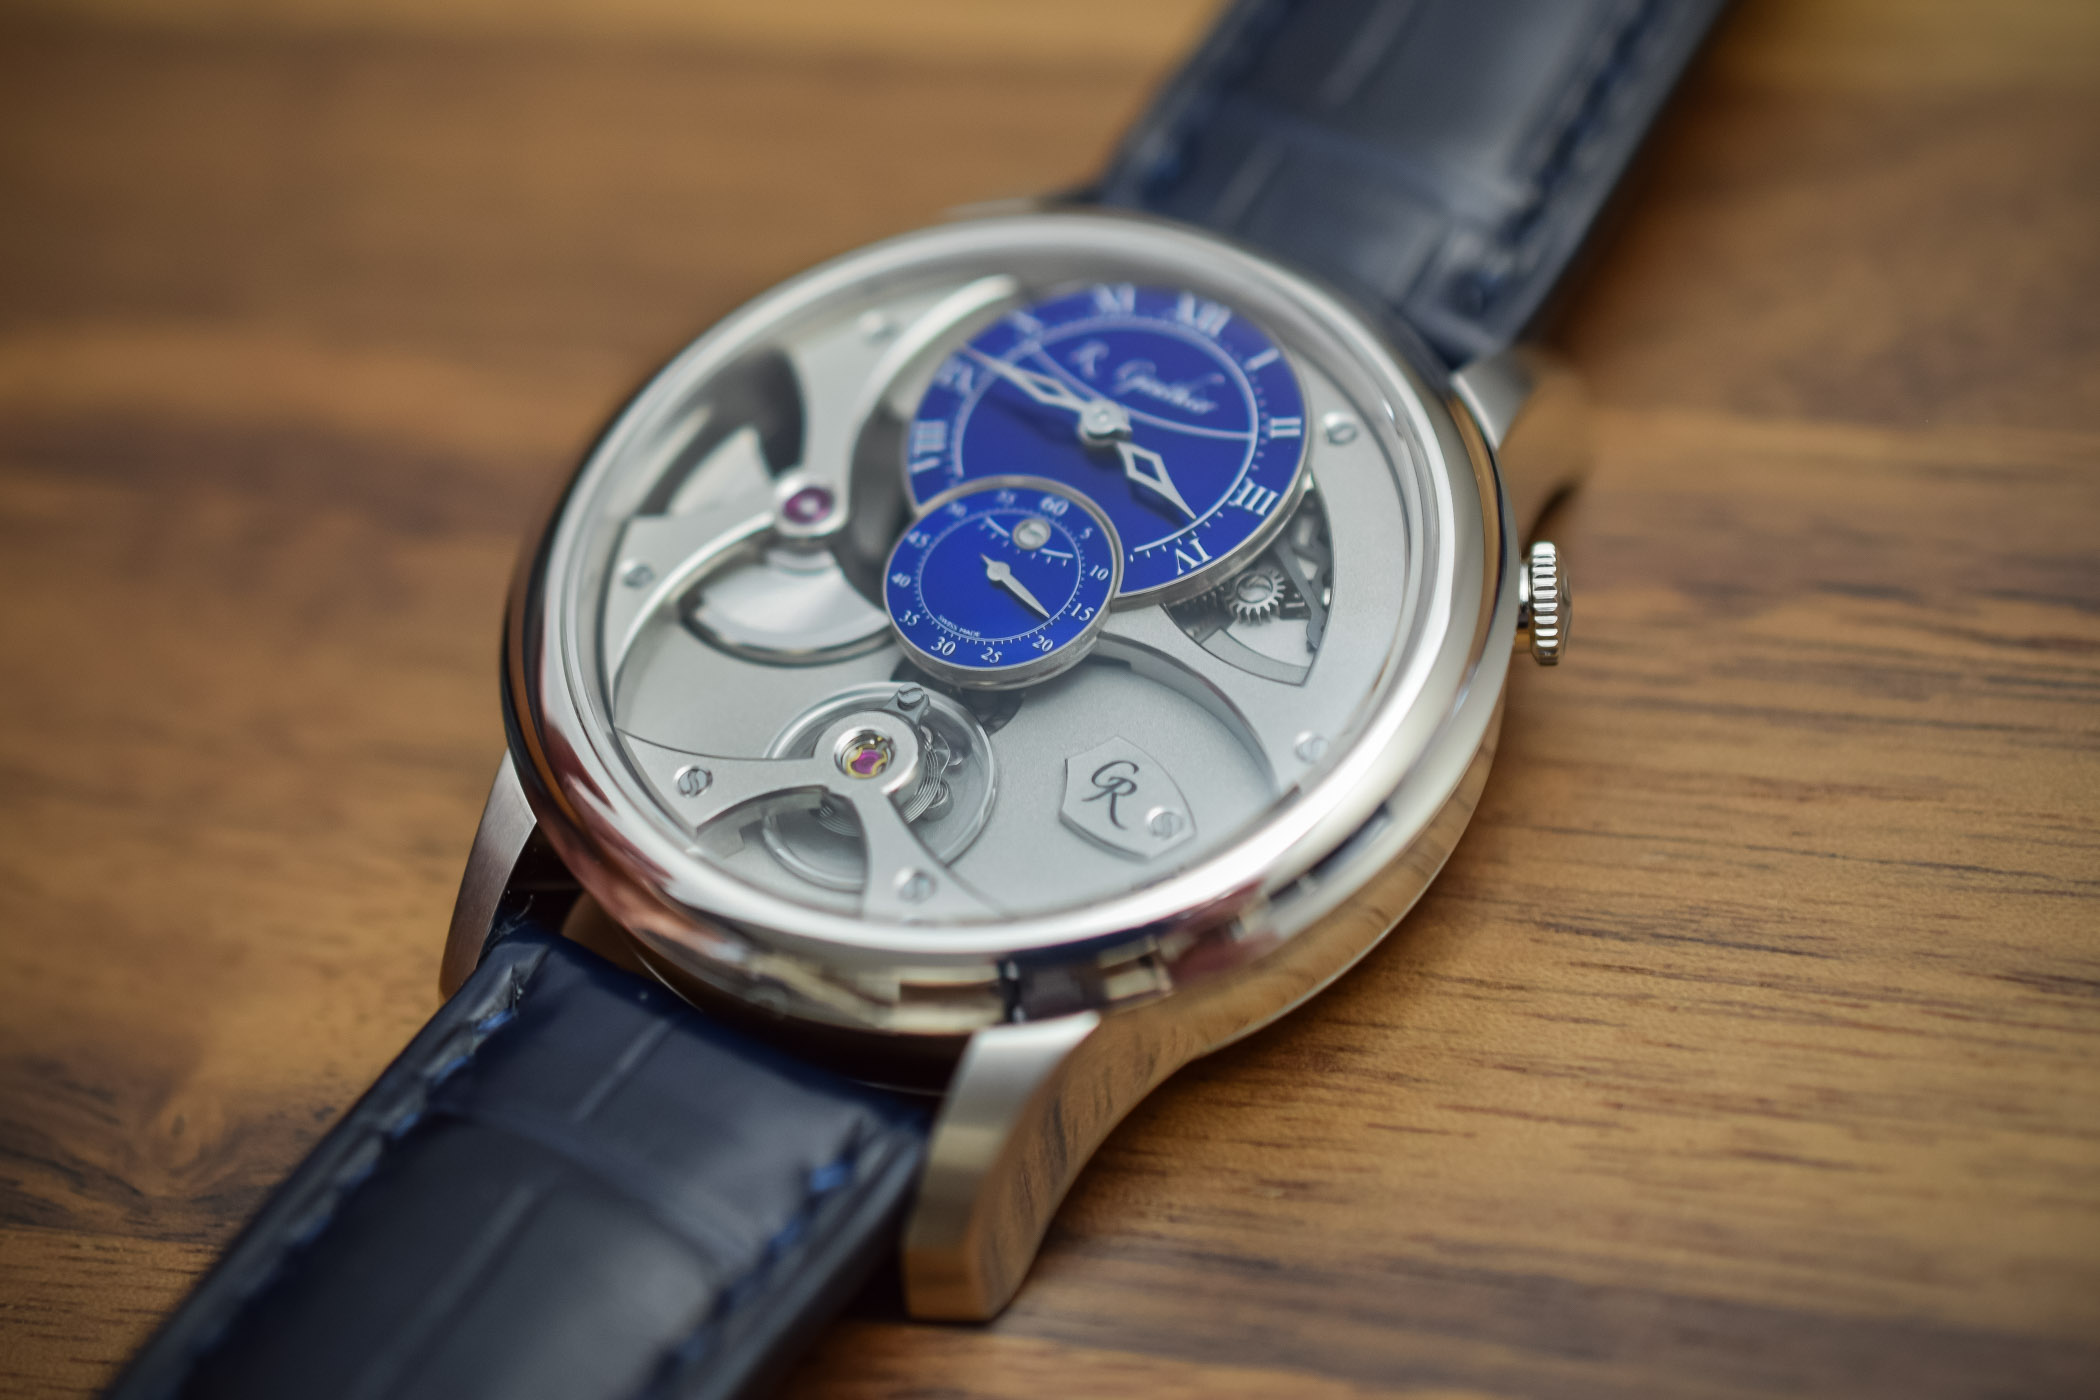 Romain Gauthier Insight Micro-Rotor